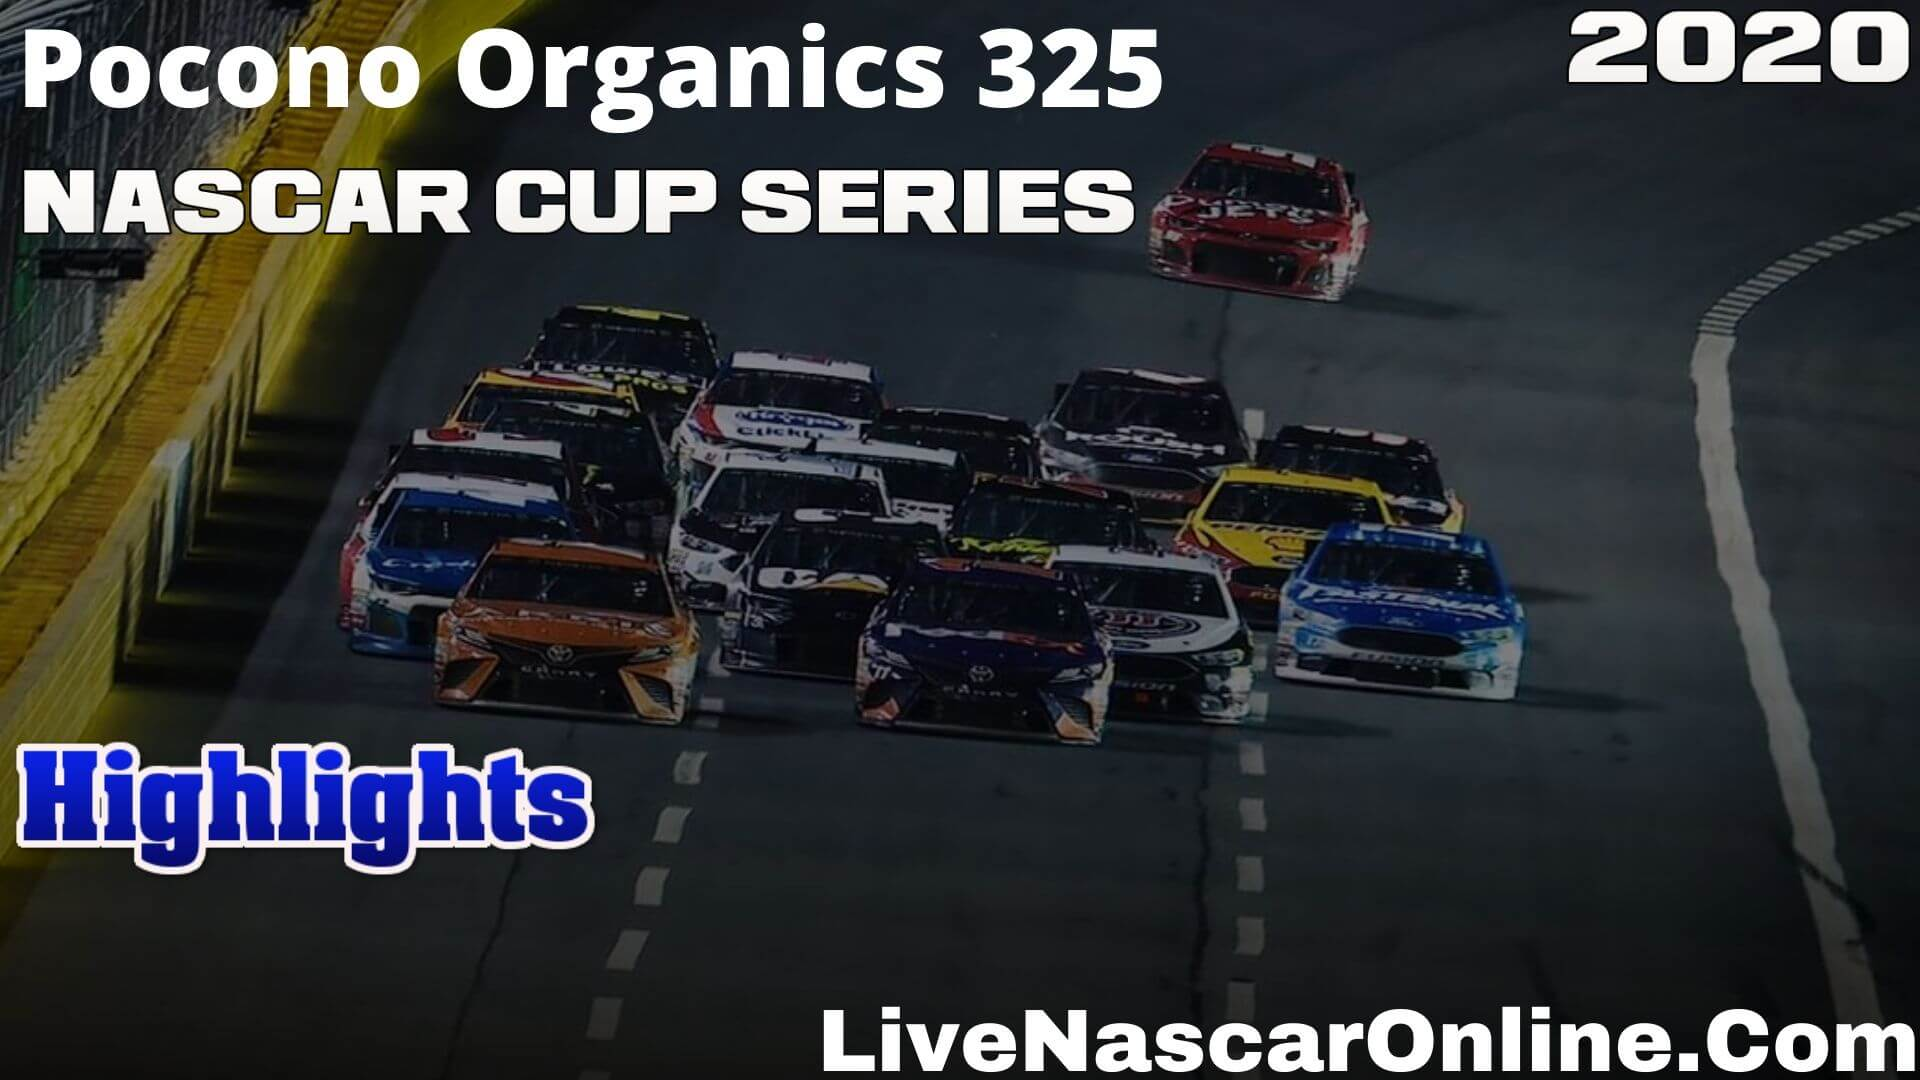 Pocono Organics 325 Cup Series Highlights 2020